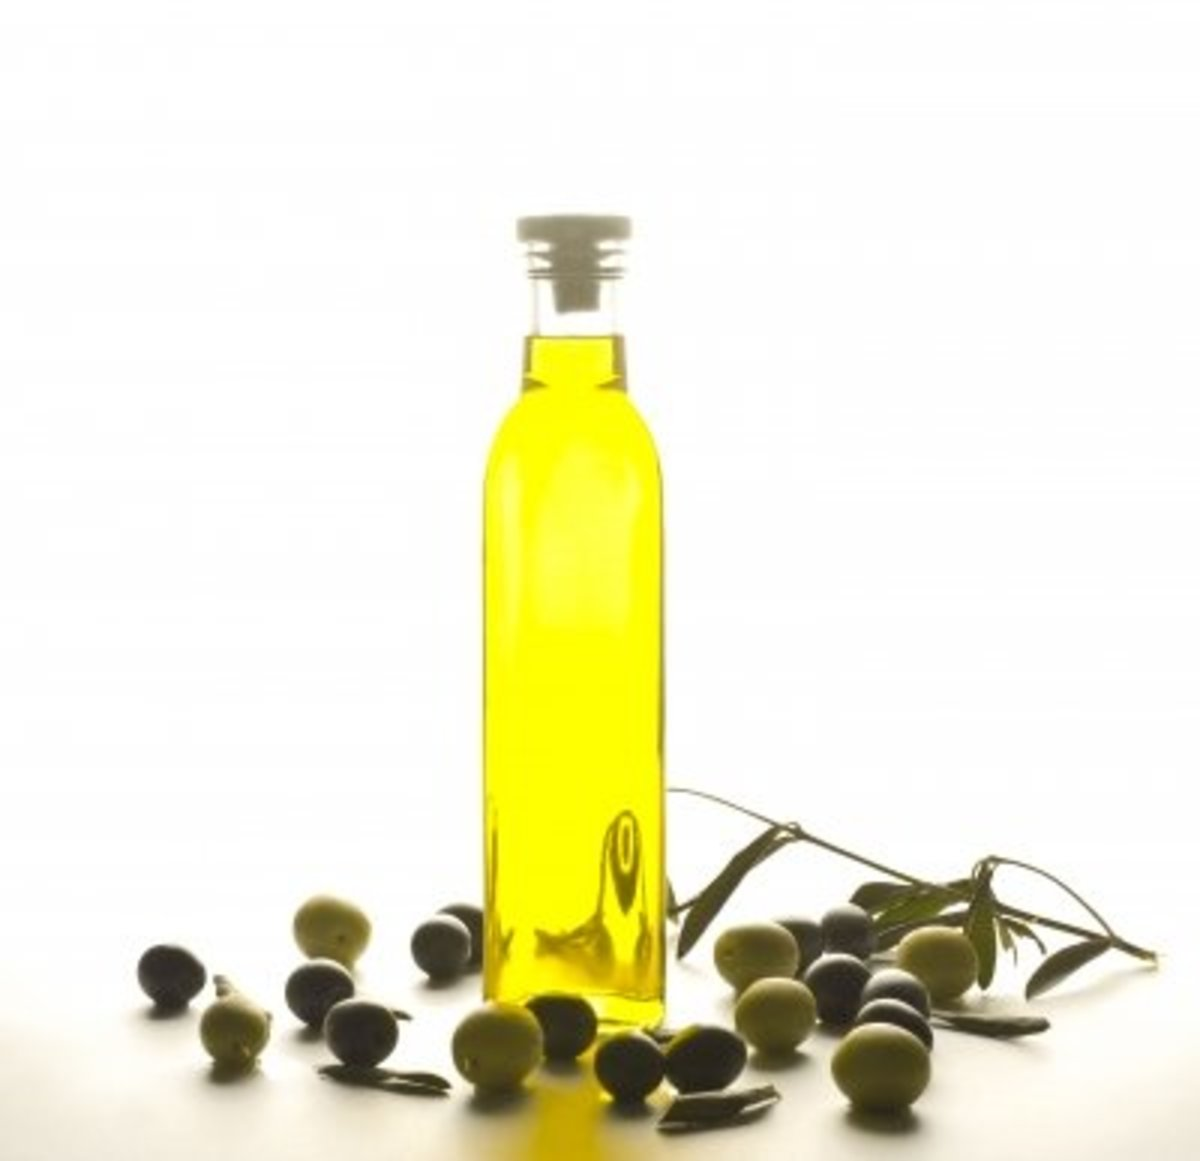 Organic skin care ingredients are the best to use if possible as they are 100% chemical free.